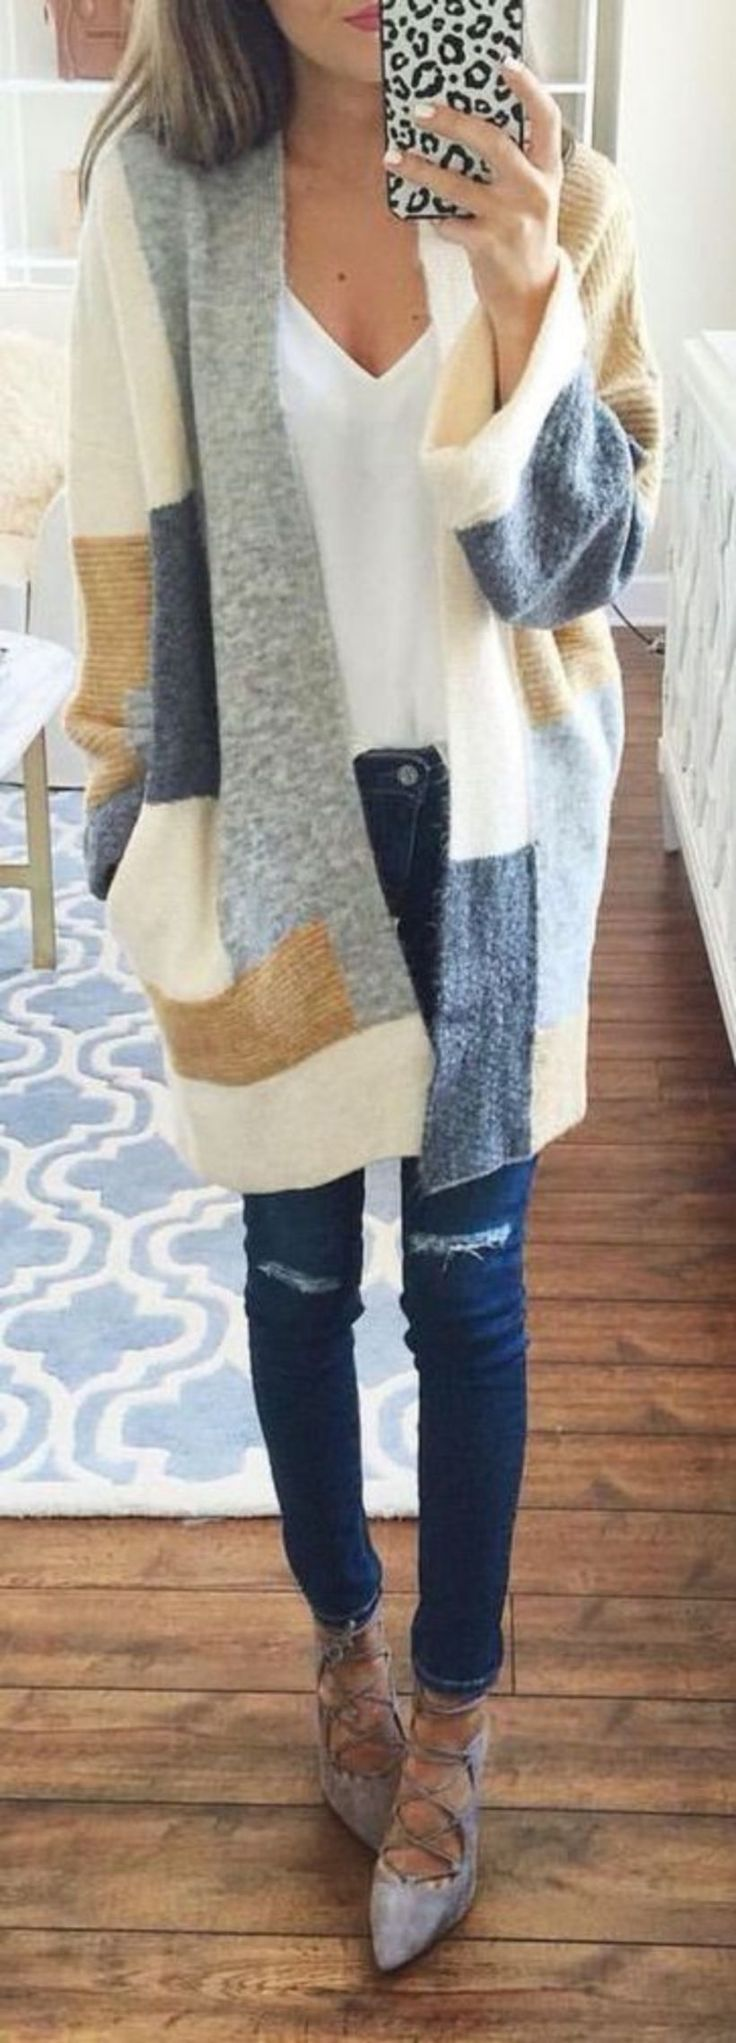 Awesome 60 Comfy Fall Outfit Ideas to Try 2017 from https://fashionetter.com/2017/09/13/60-comfy-fall-outfit-ideas-try-2017/